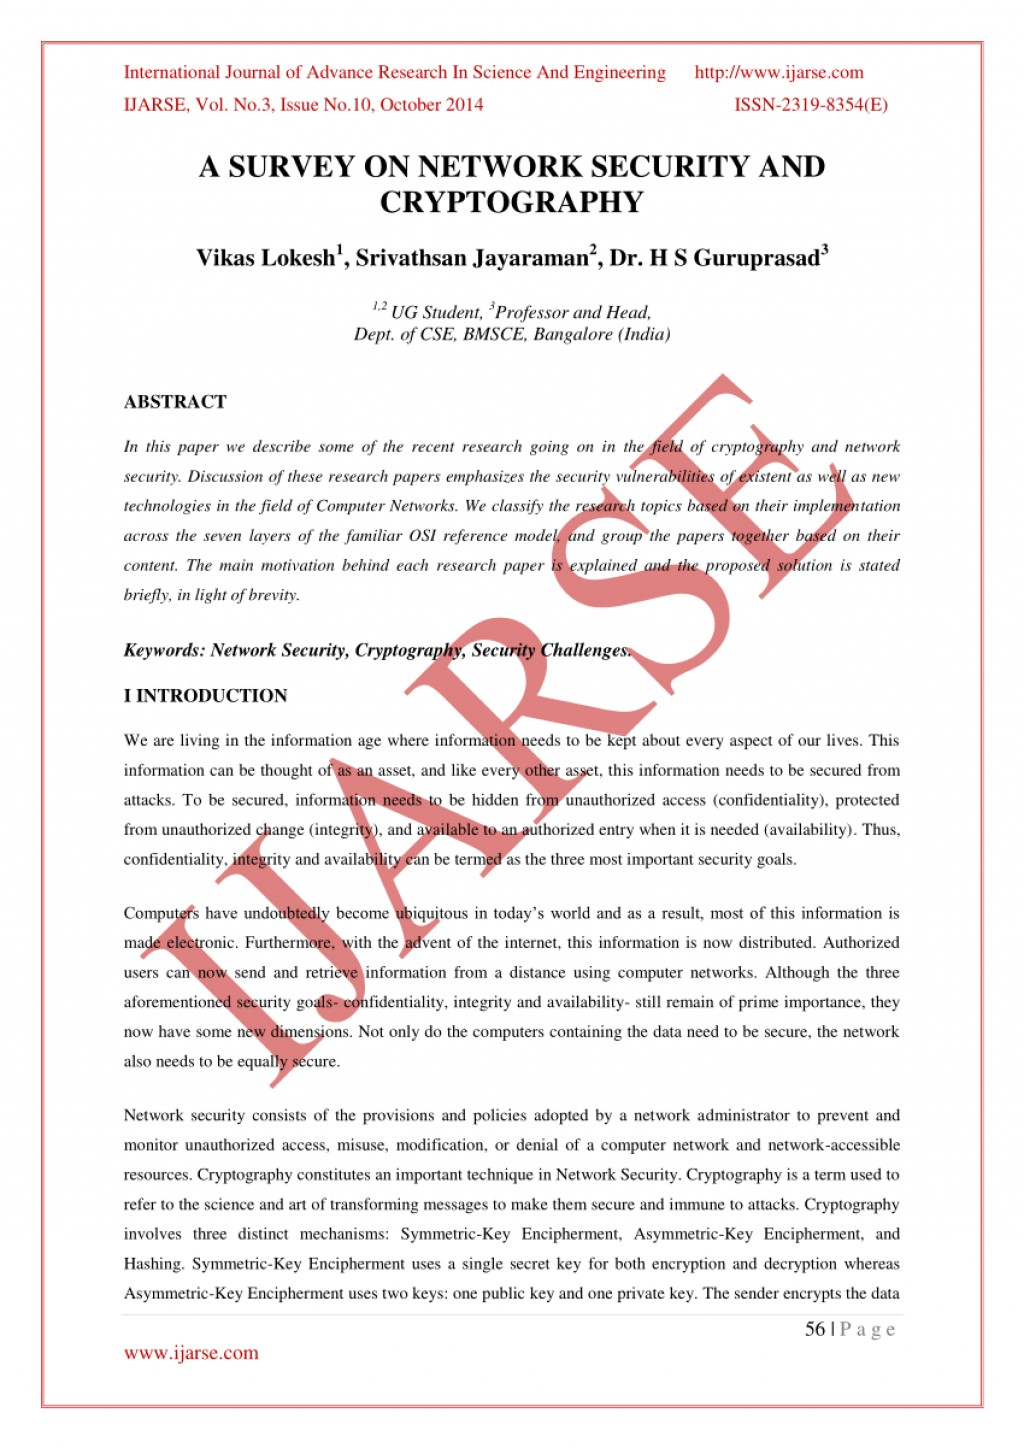 002 Cryptography Researchs Pdf Free Download Largepreview Striking Research Papers Large